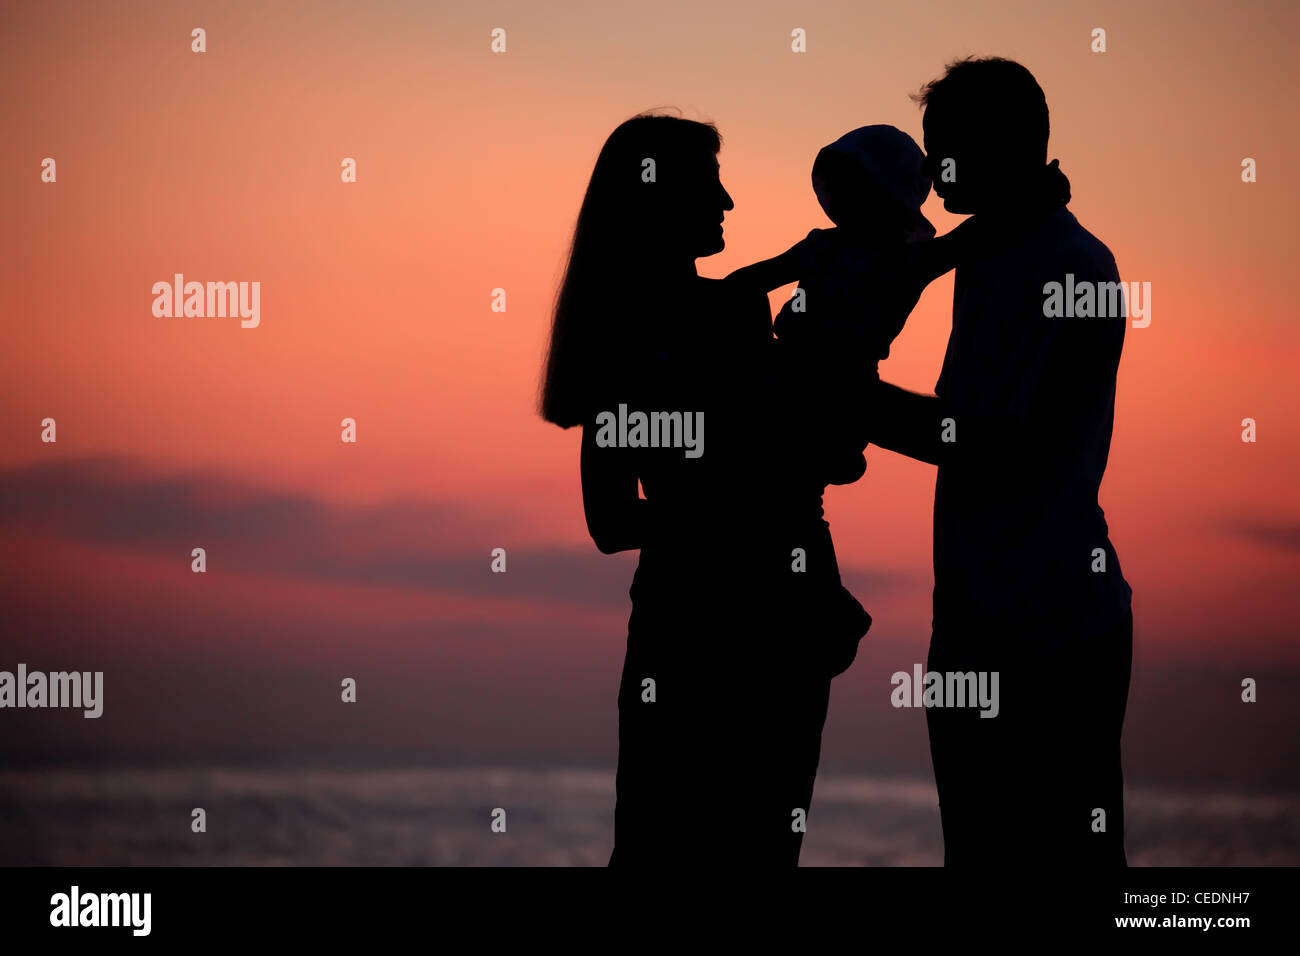 Silhouettes of parents with child on hands against  sea decline - Stock Image